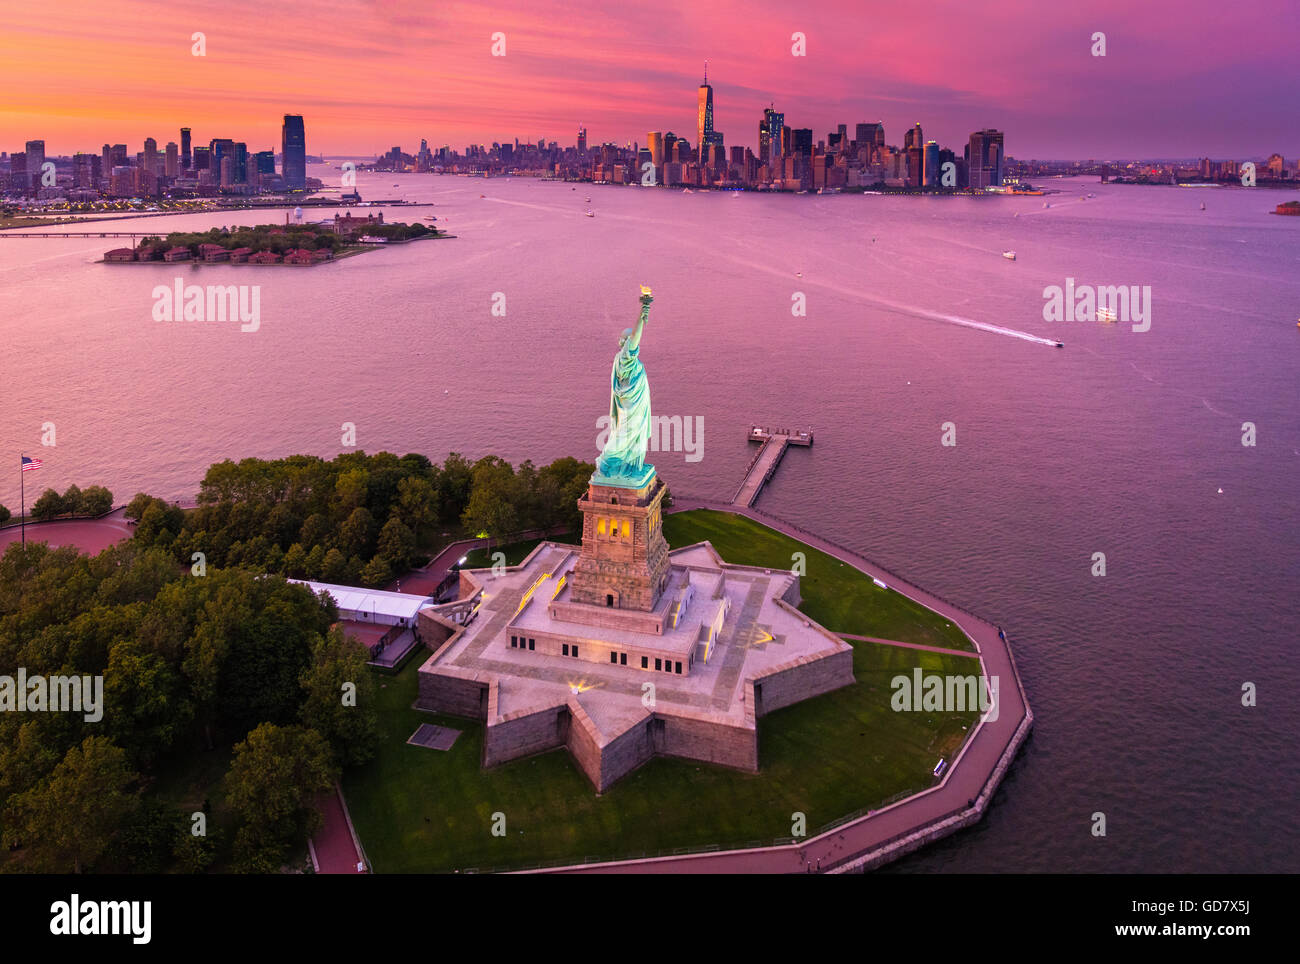 The Statue of Liberty is a colossal neoclassical sculpture on Liberty Island in New York Harbor in New York City - Stock Image